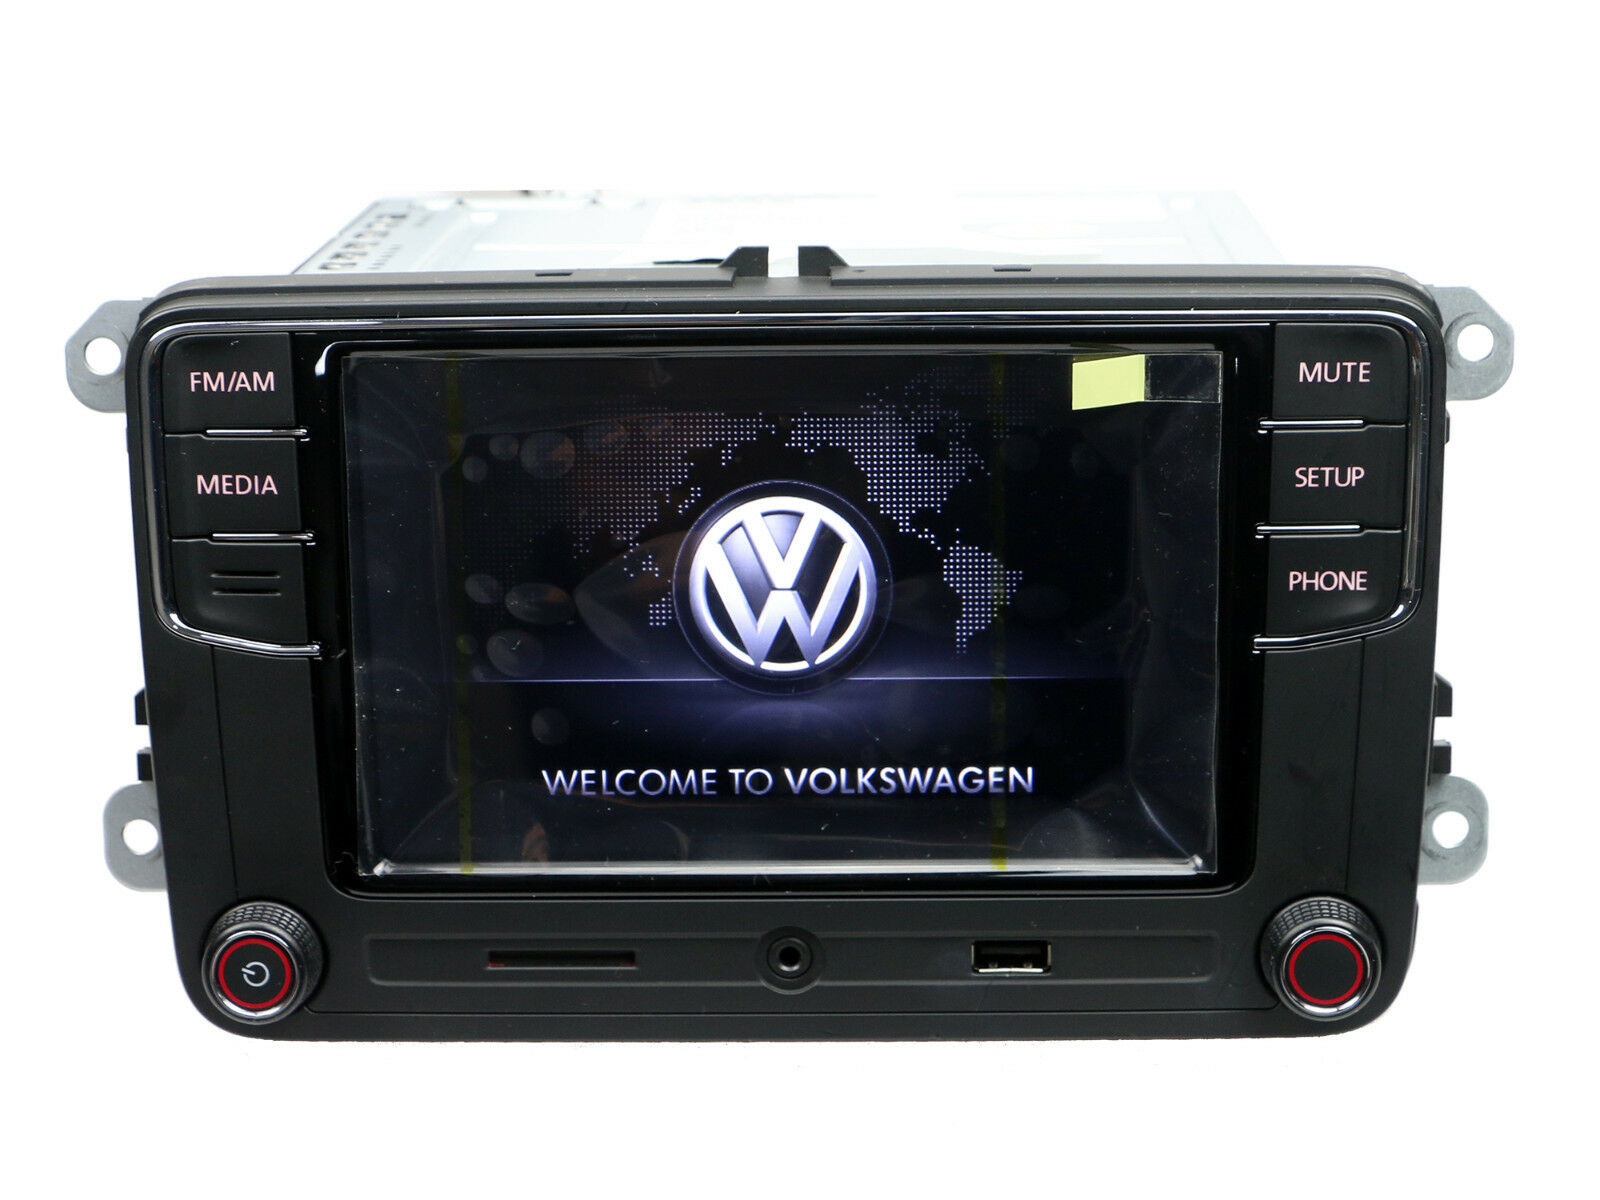 oem vw rcd330 plus radio 6 5   mib ui bluetooth usb aux user manual touran 2016 owner's manual touran